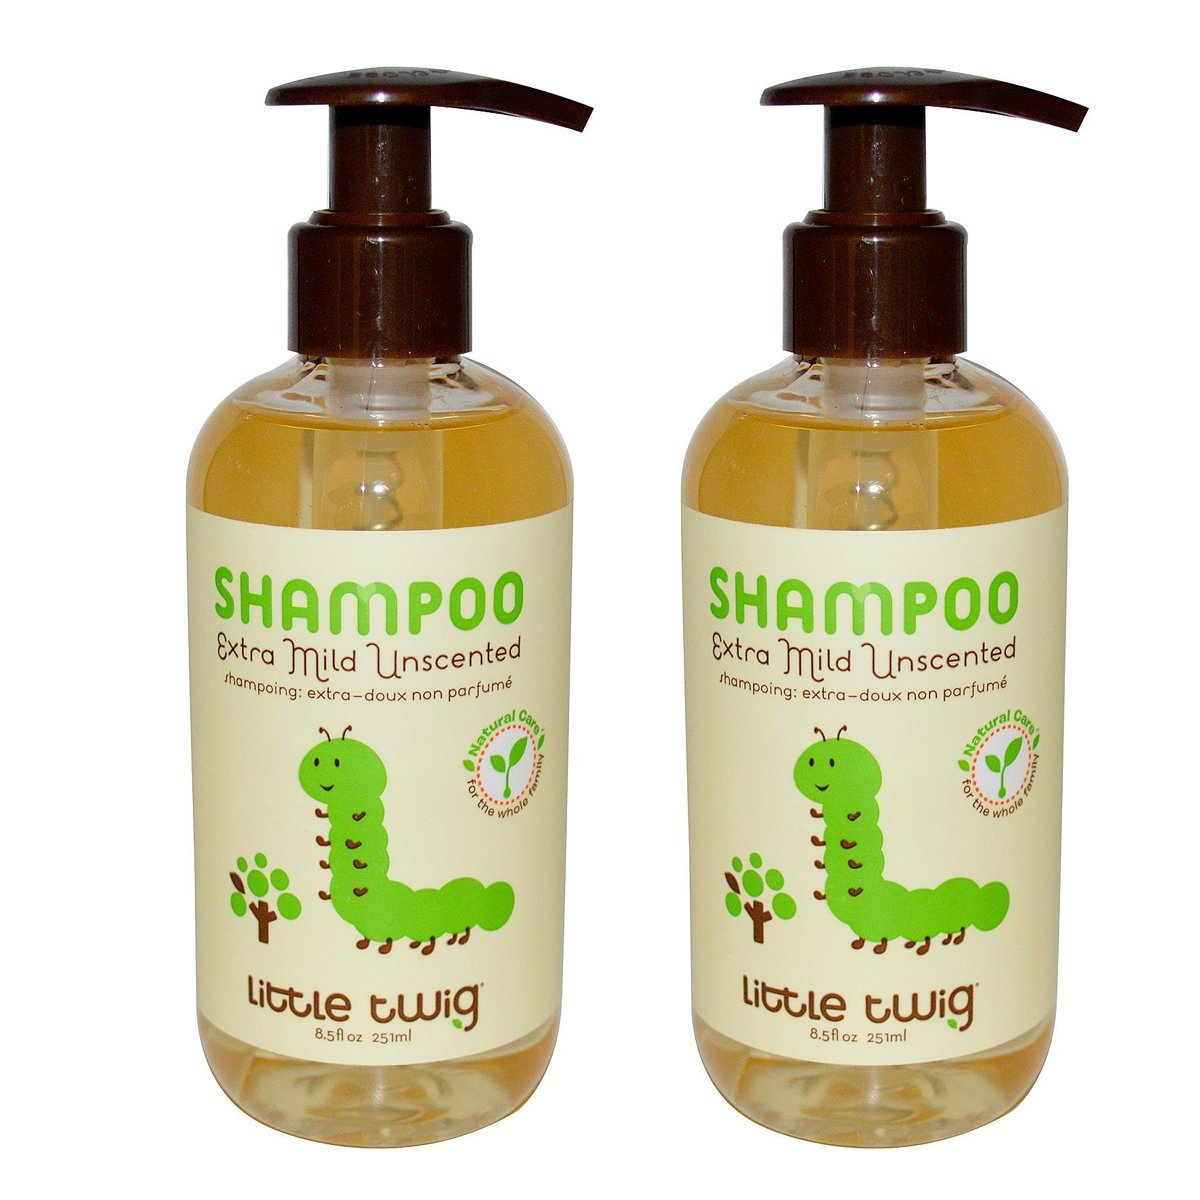 Little Twig Unscented Shampoo with Jojoba Oil and Vitamin B5, 8.5 fl. oz. (Pack of 2)